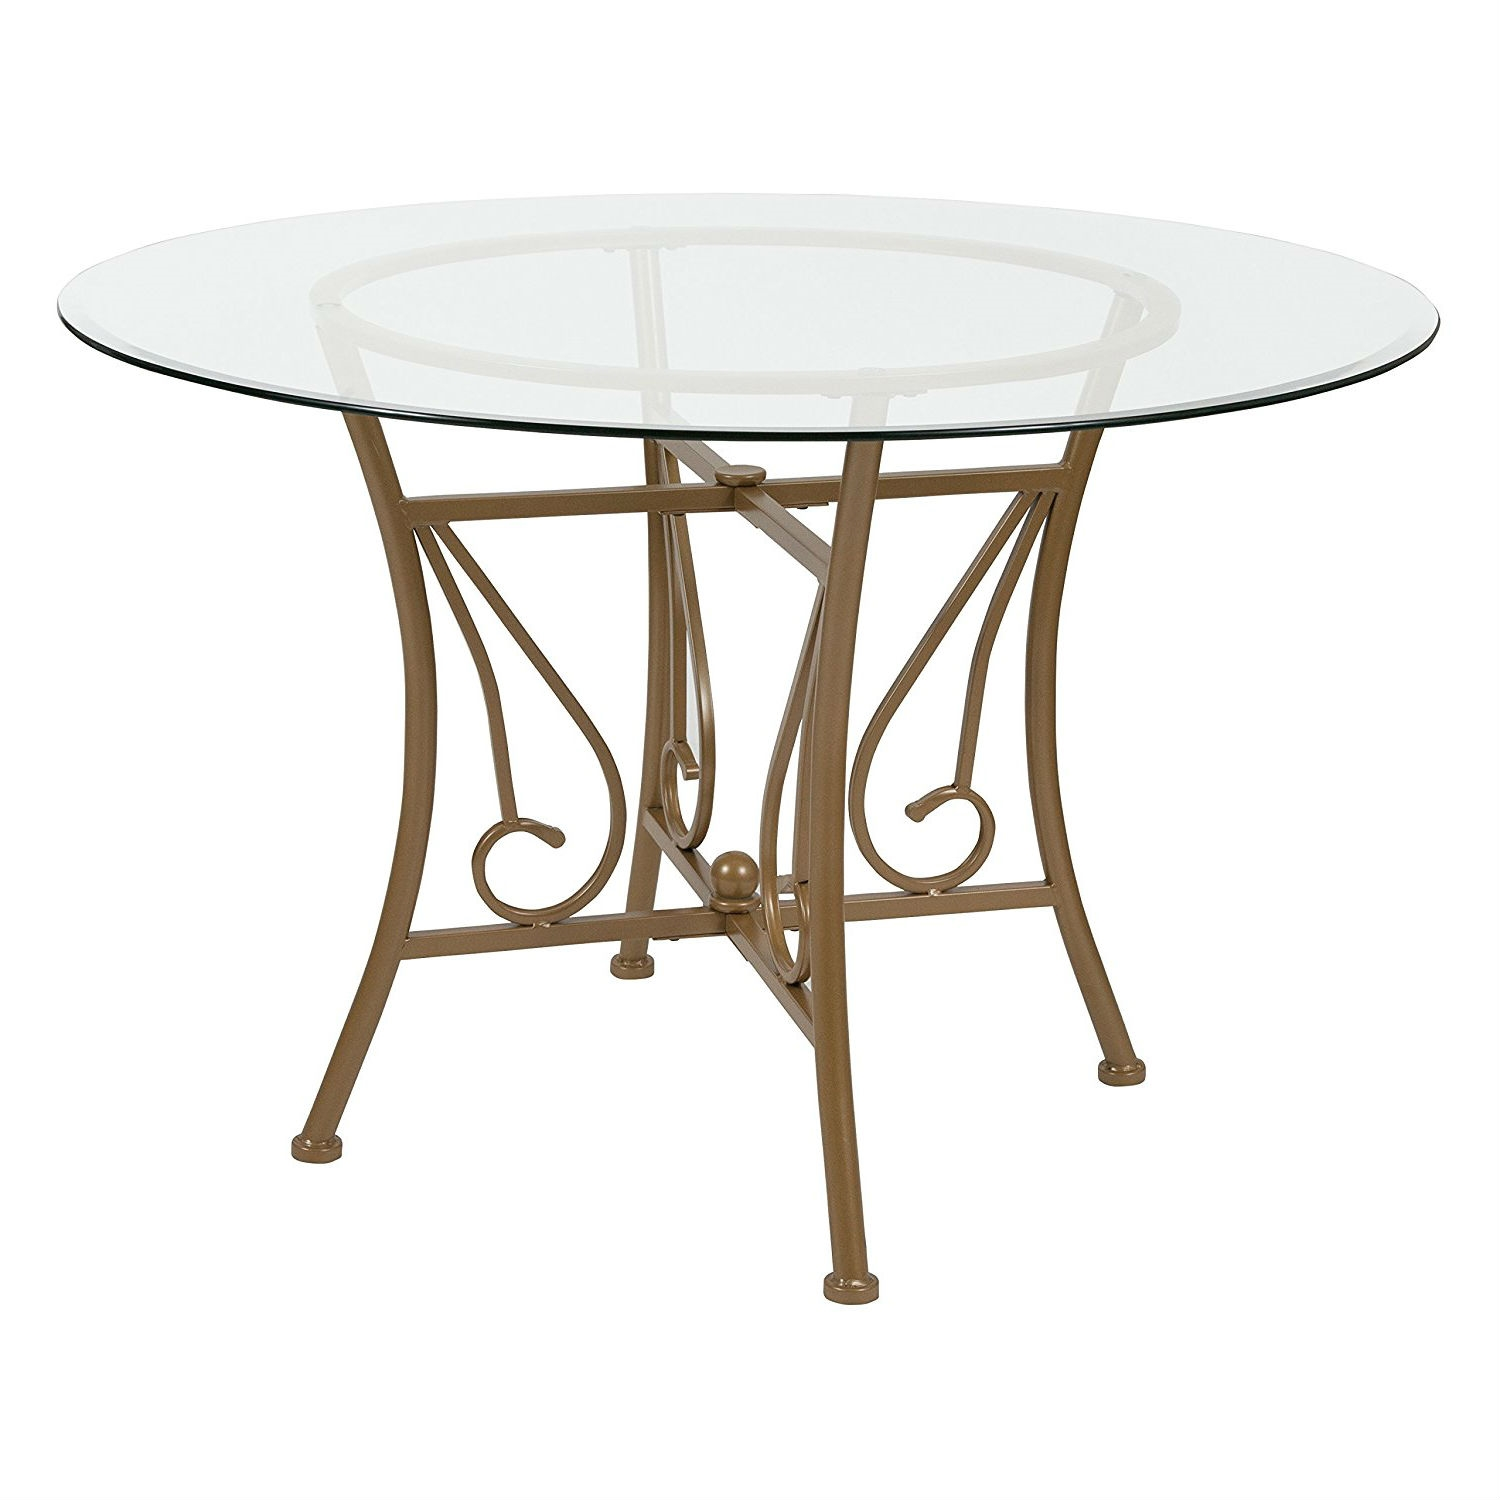 Round Glass Top Dining Table Contemporary 45 Inch Round Glass Top Dining Table With Matte Gold Metal Frame